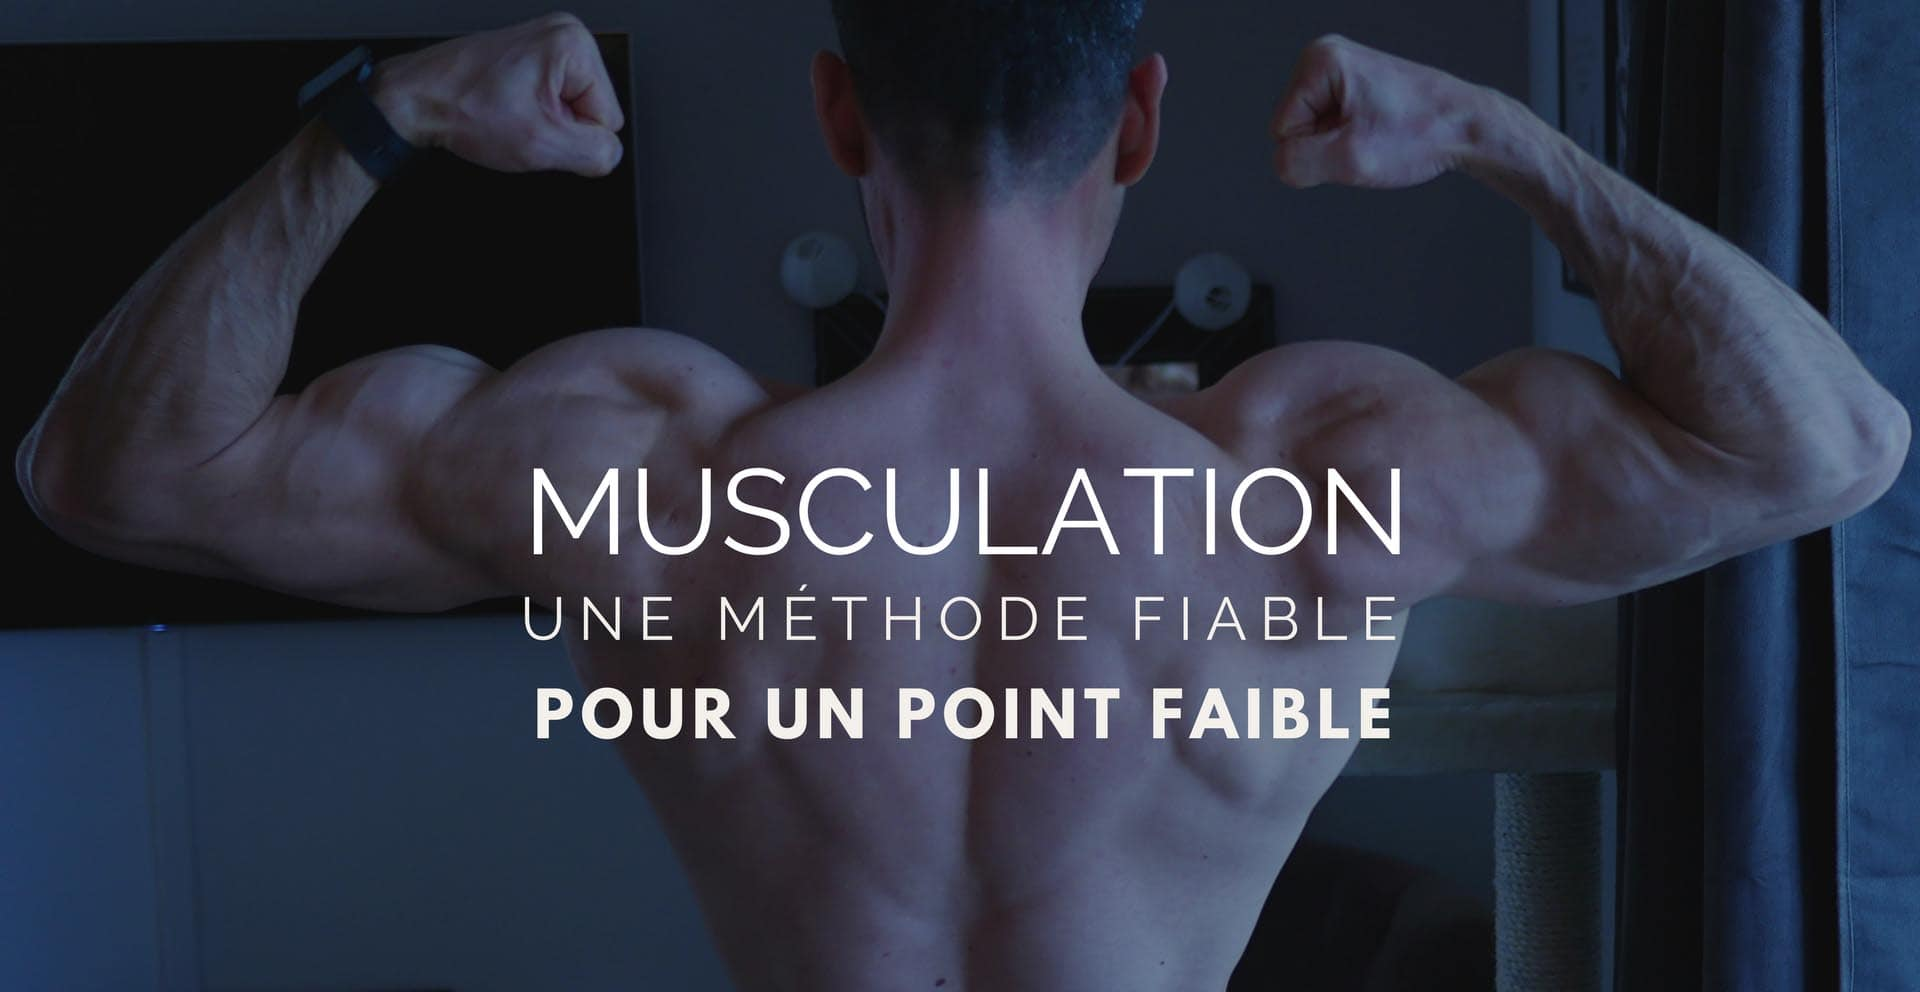 POINT FAIBLE MUSCULATION